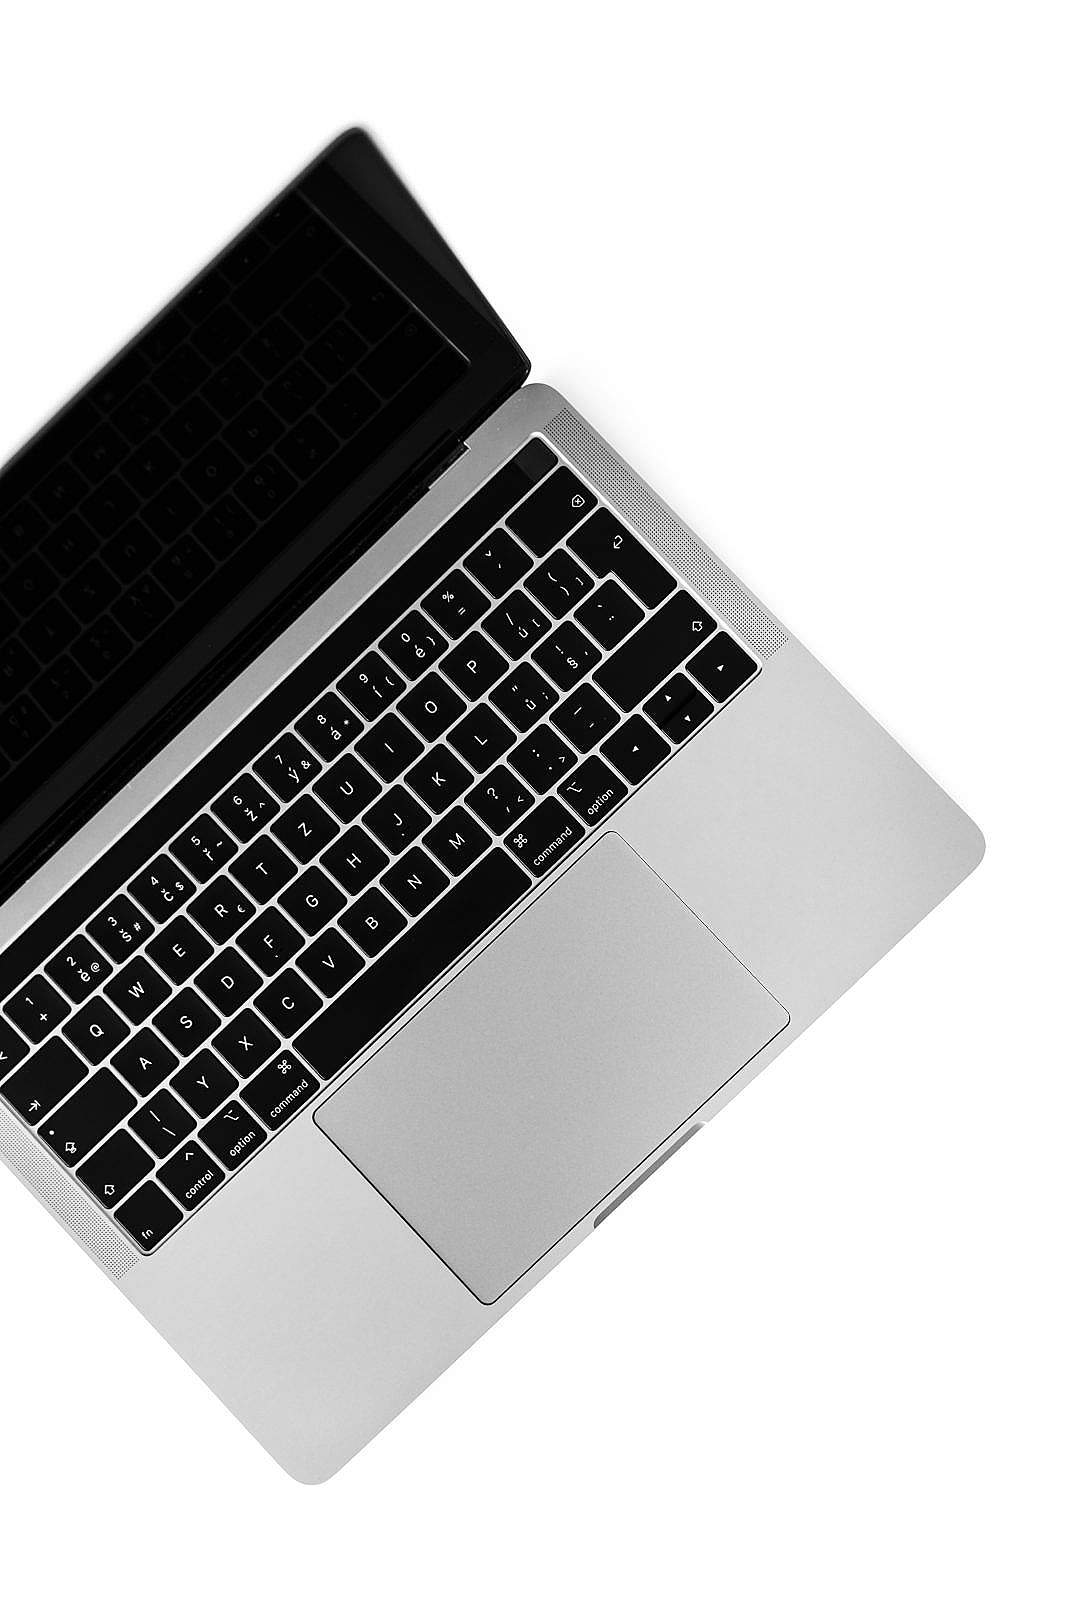 Download MacBook Pro Isolated on a White Background FREE Stock Photo